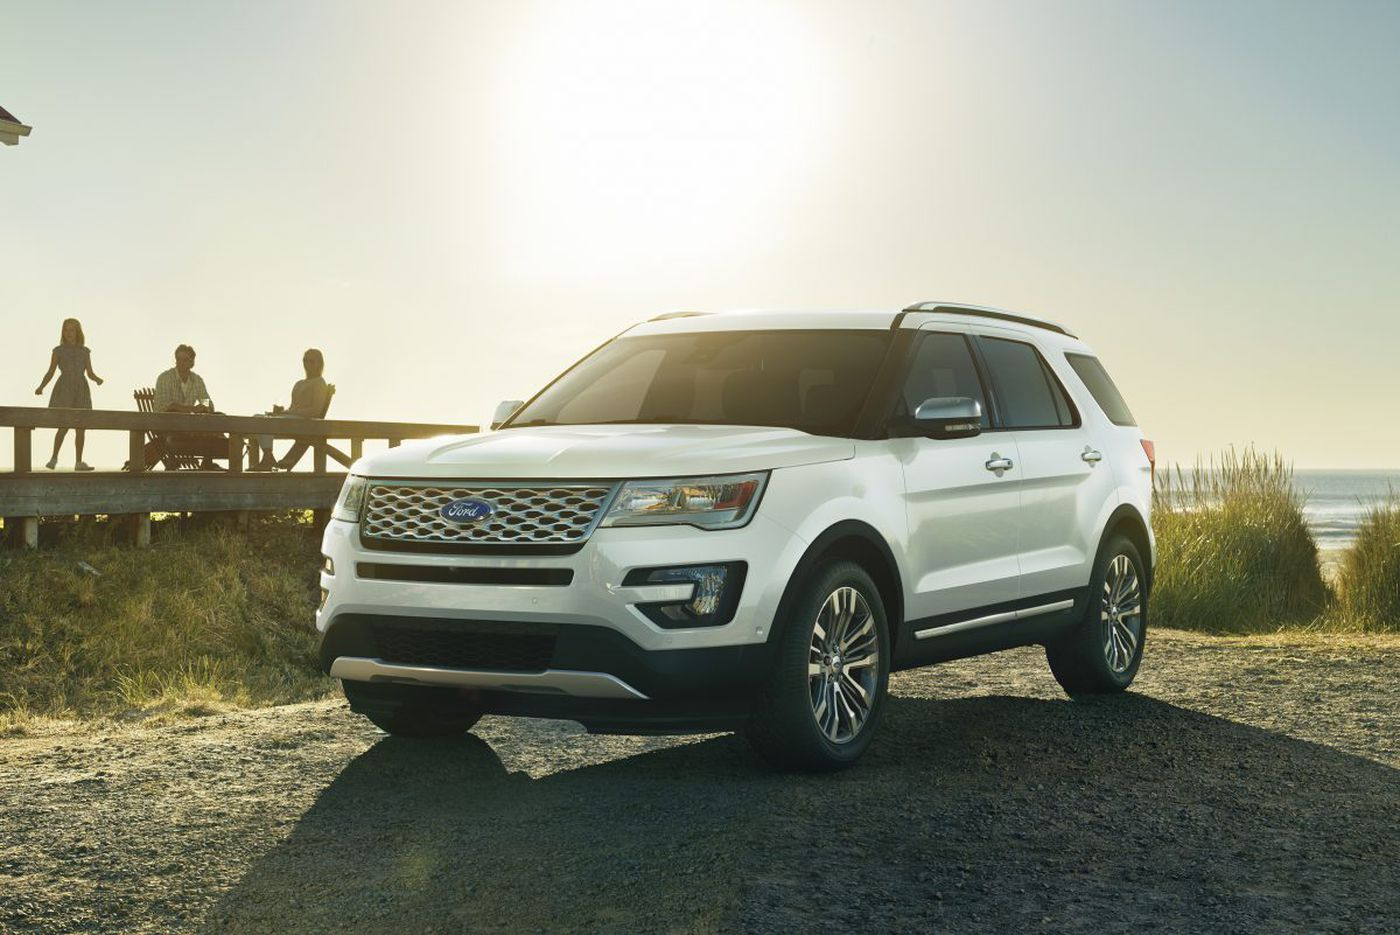 2017 Ford Explorer Platinum is powerful, pricey SUV